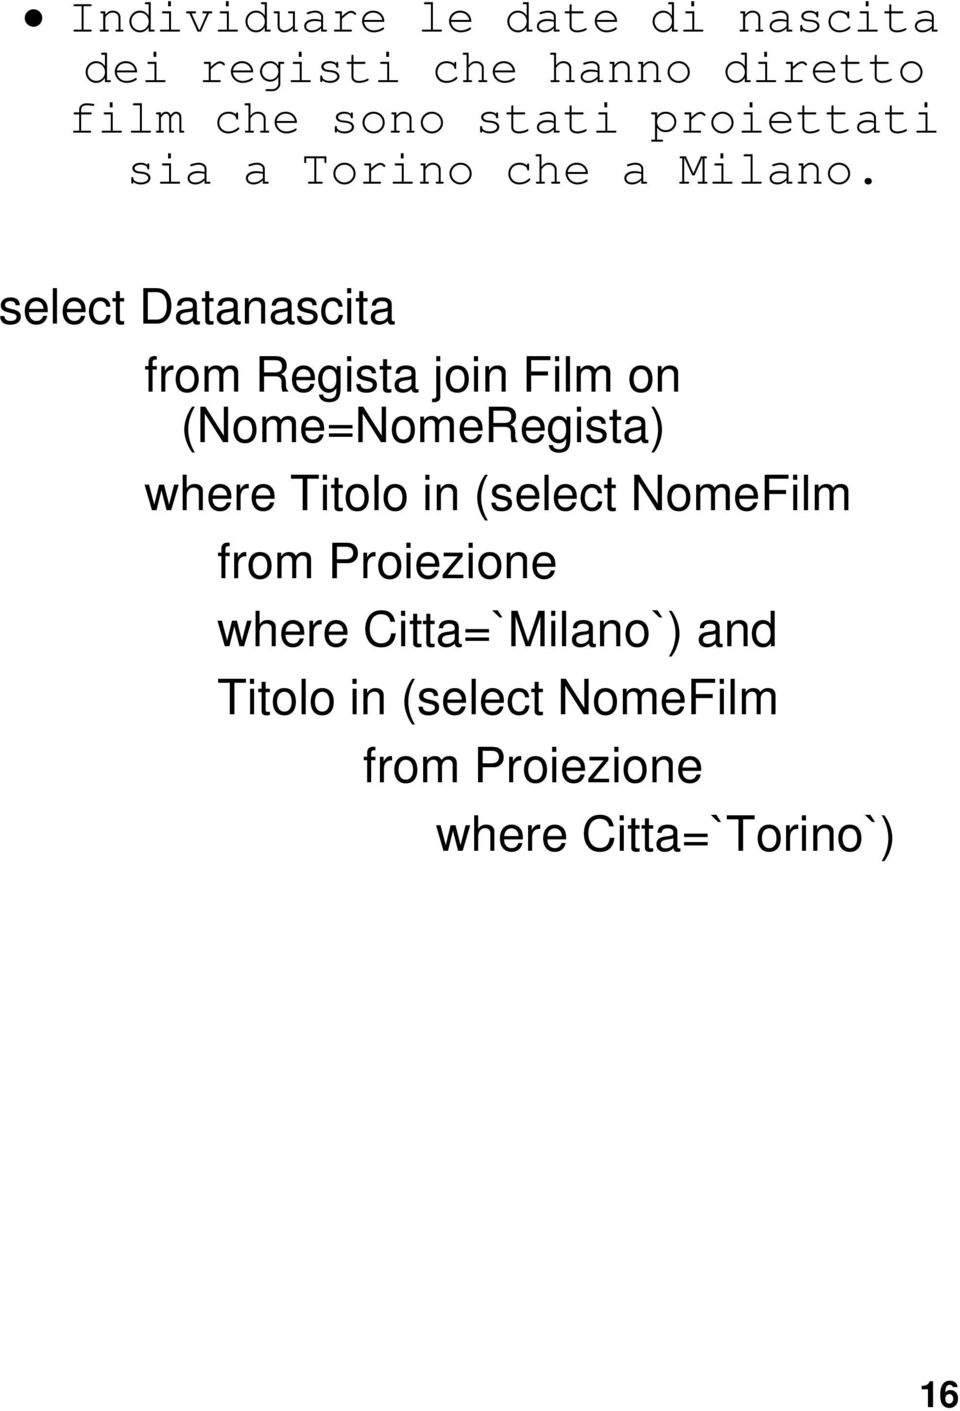 select Datanascita from Regista join Film on (Nome=NomeRegista) where Titolo in